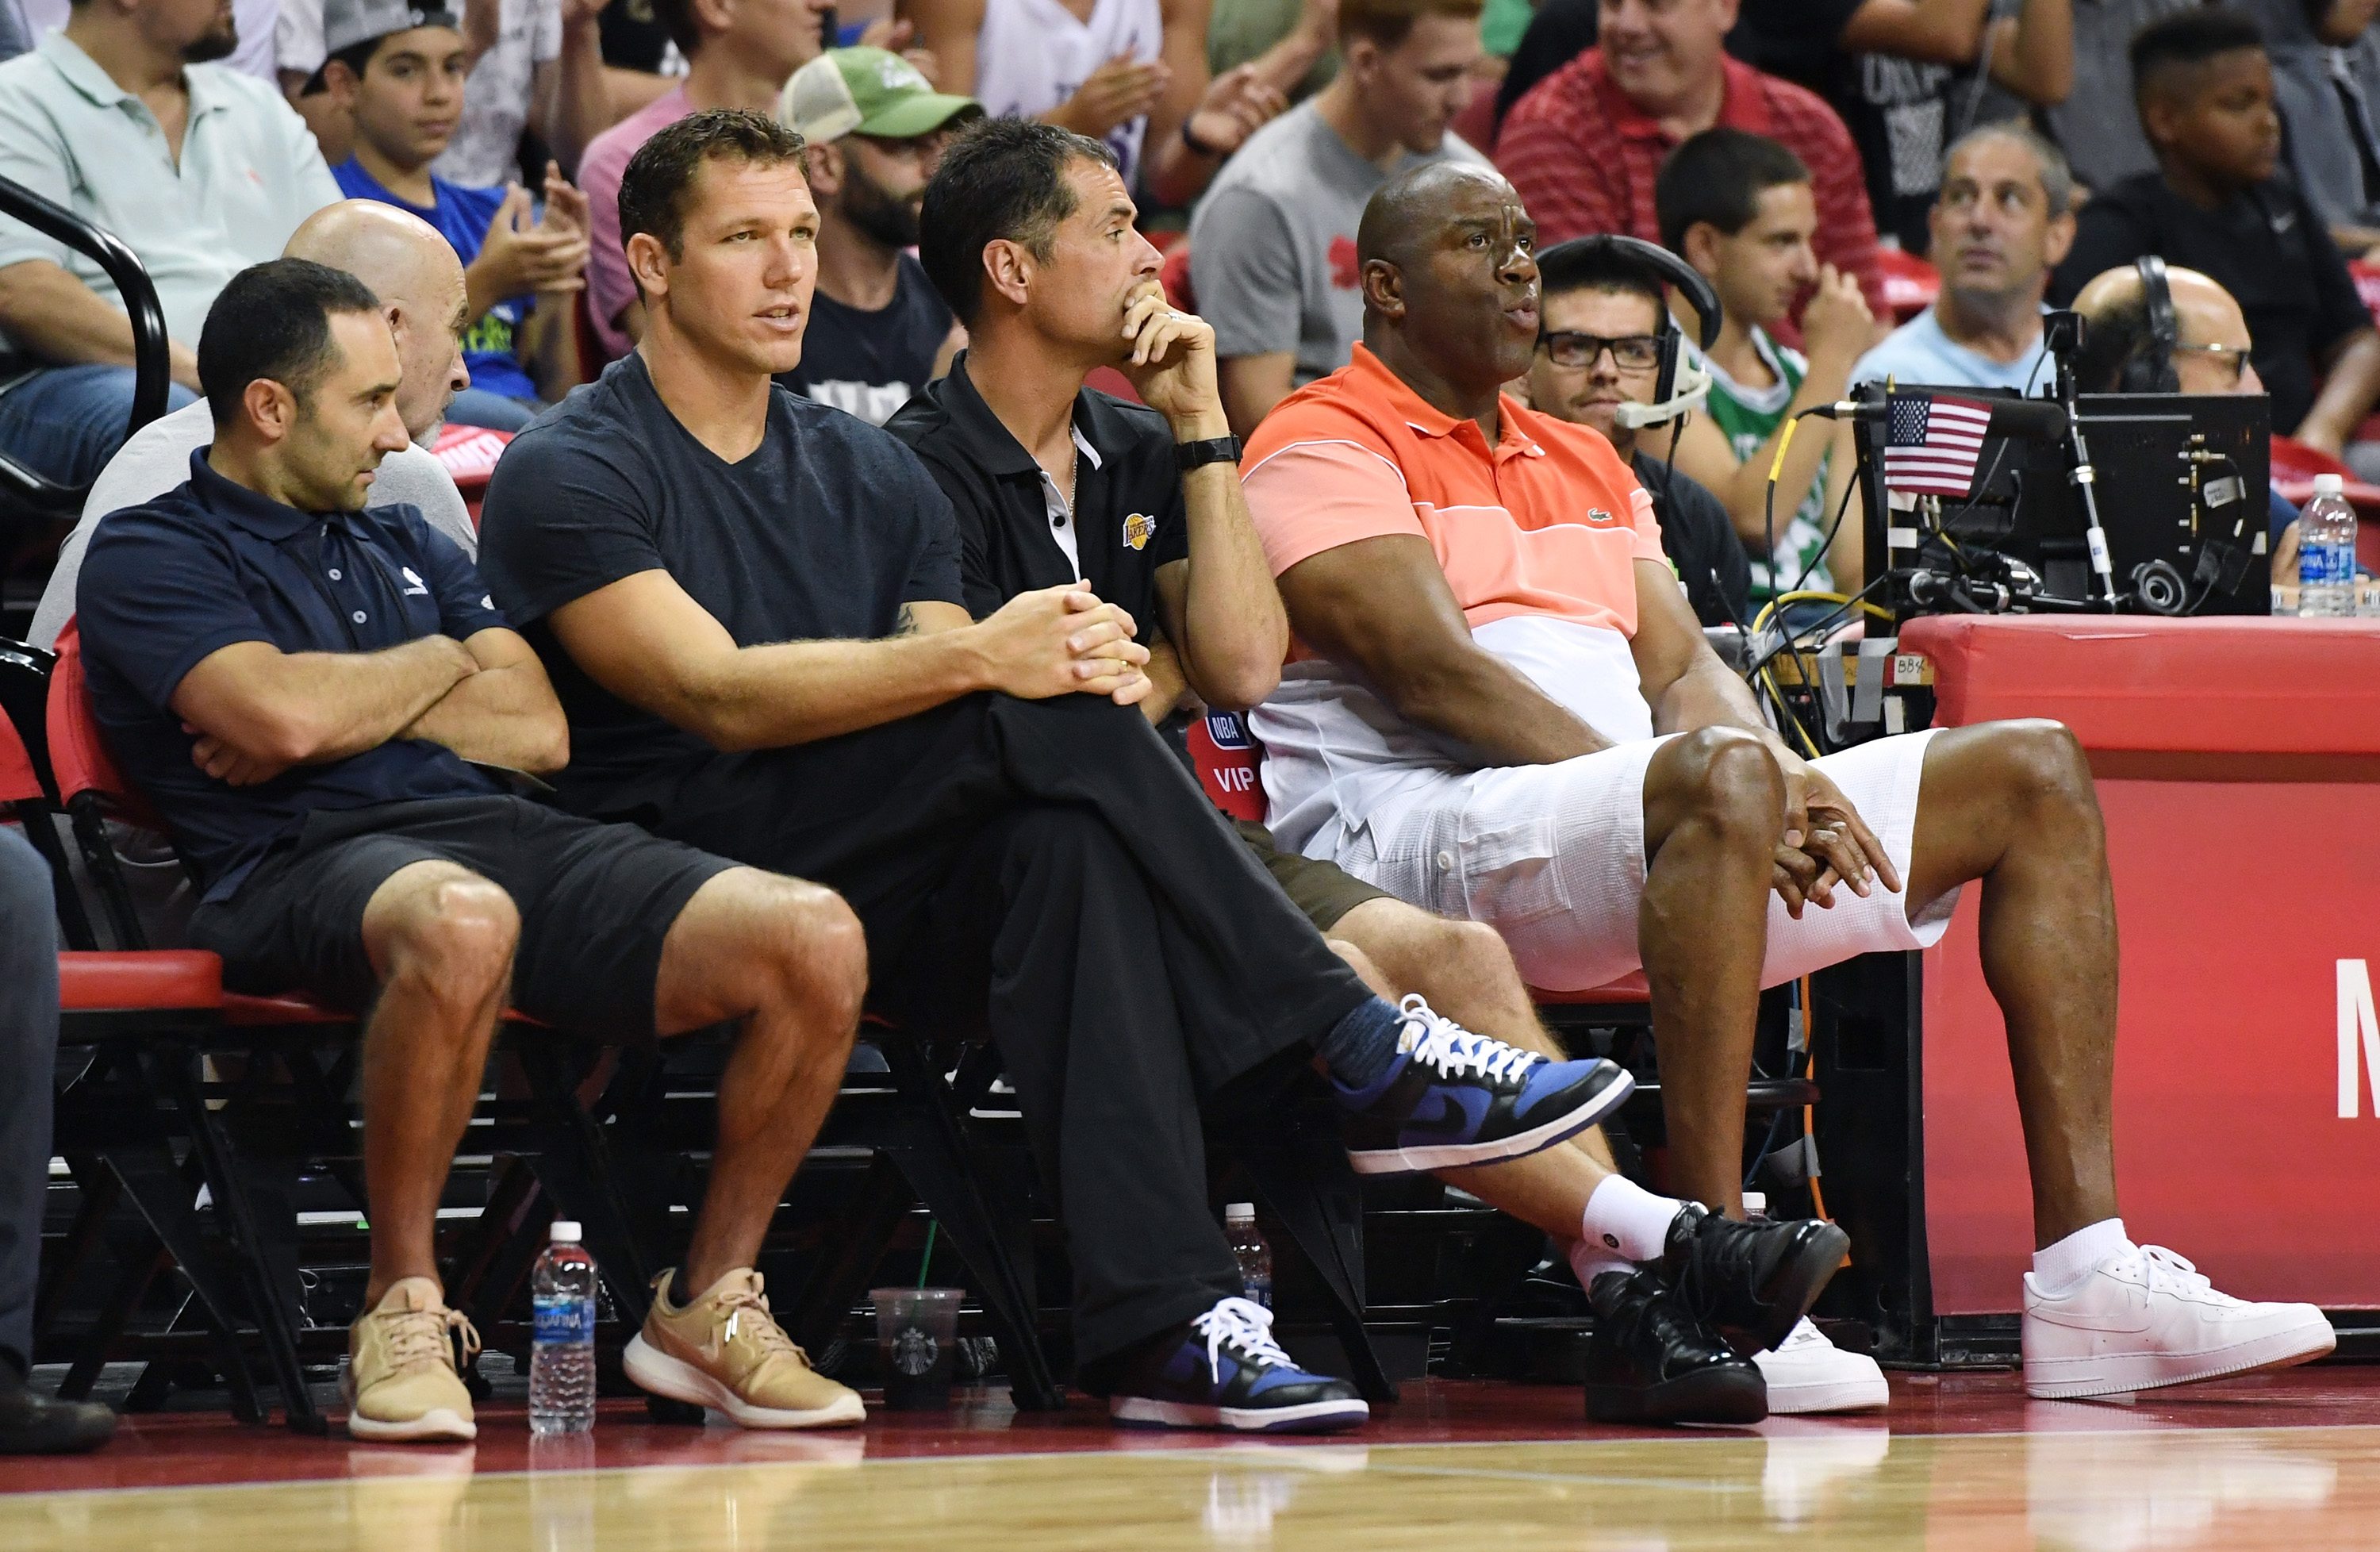 815823284-2017-las-vegas-summer-league-los-angeles-lakers-v-dallas-mavericks.jpg